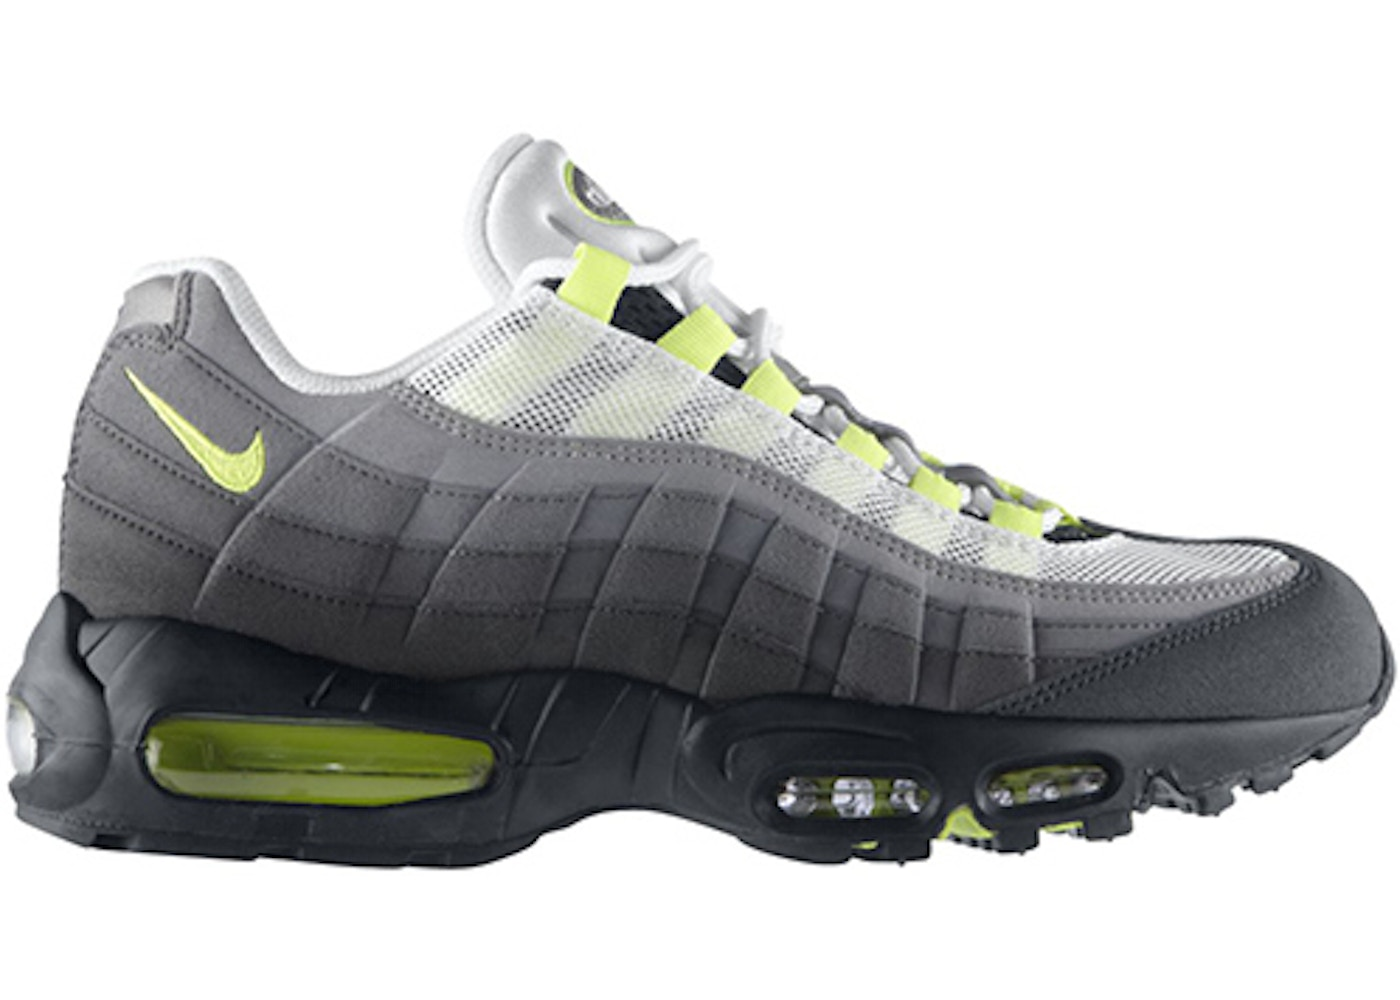 new arrival e8d78 40758 Air Max 95 OG Neon (all years) - Various